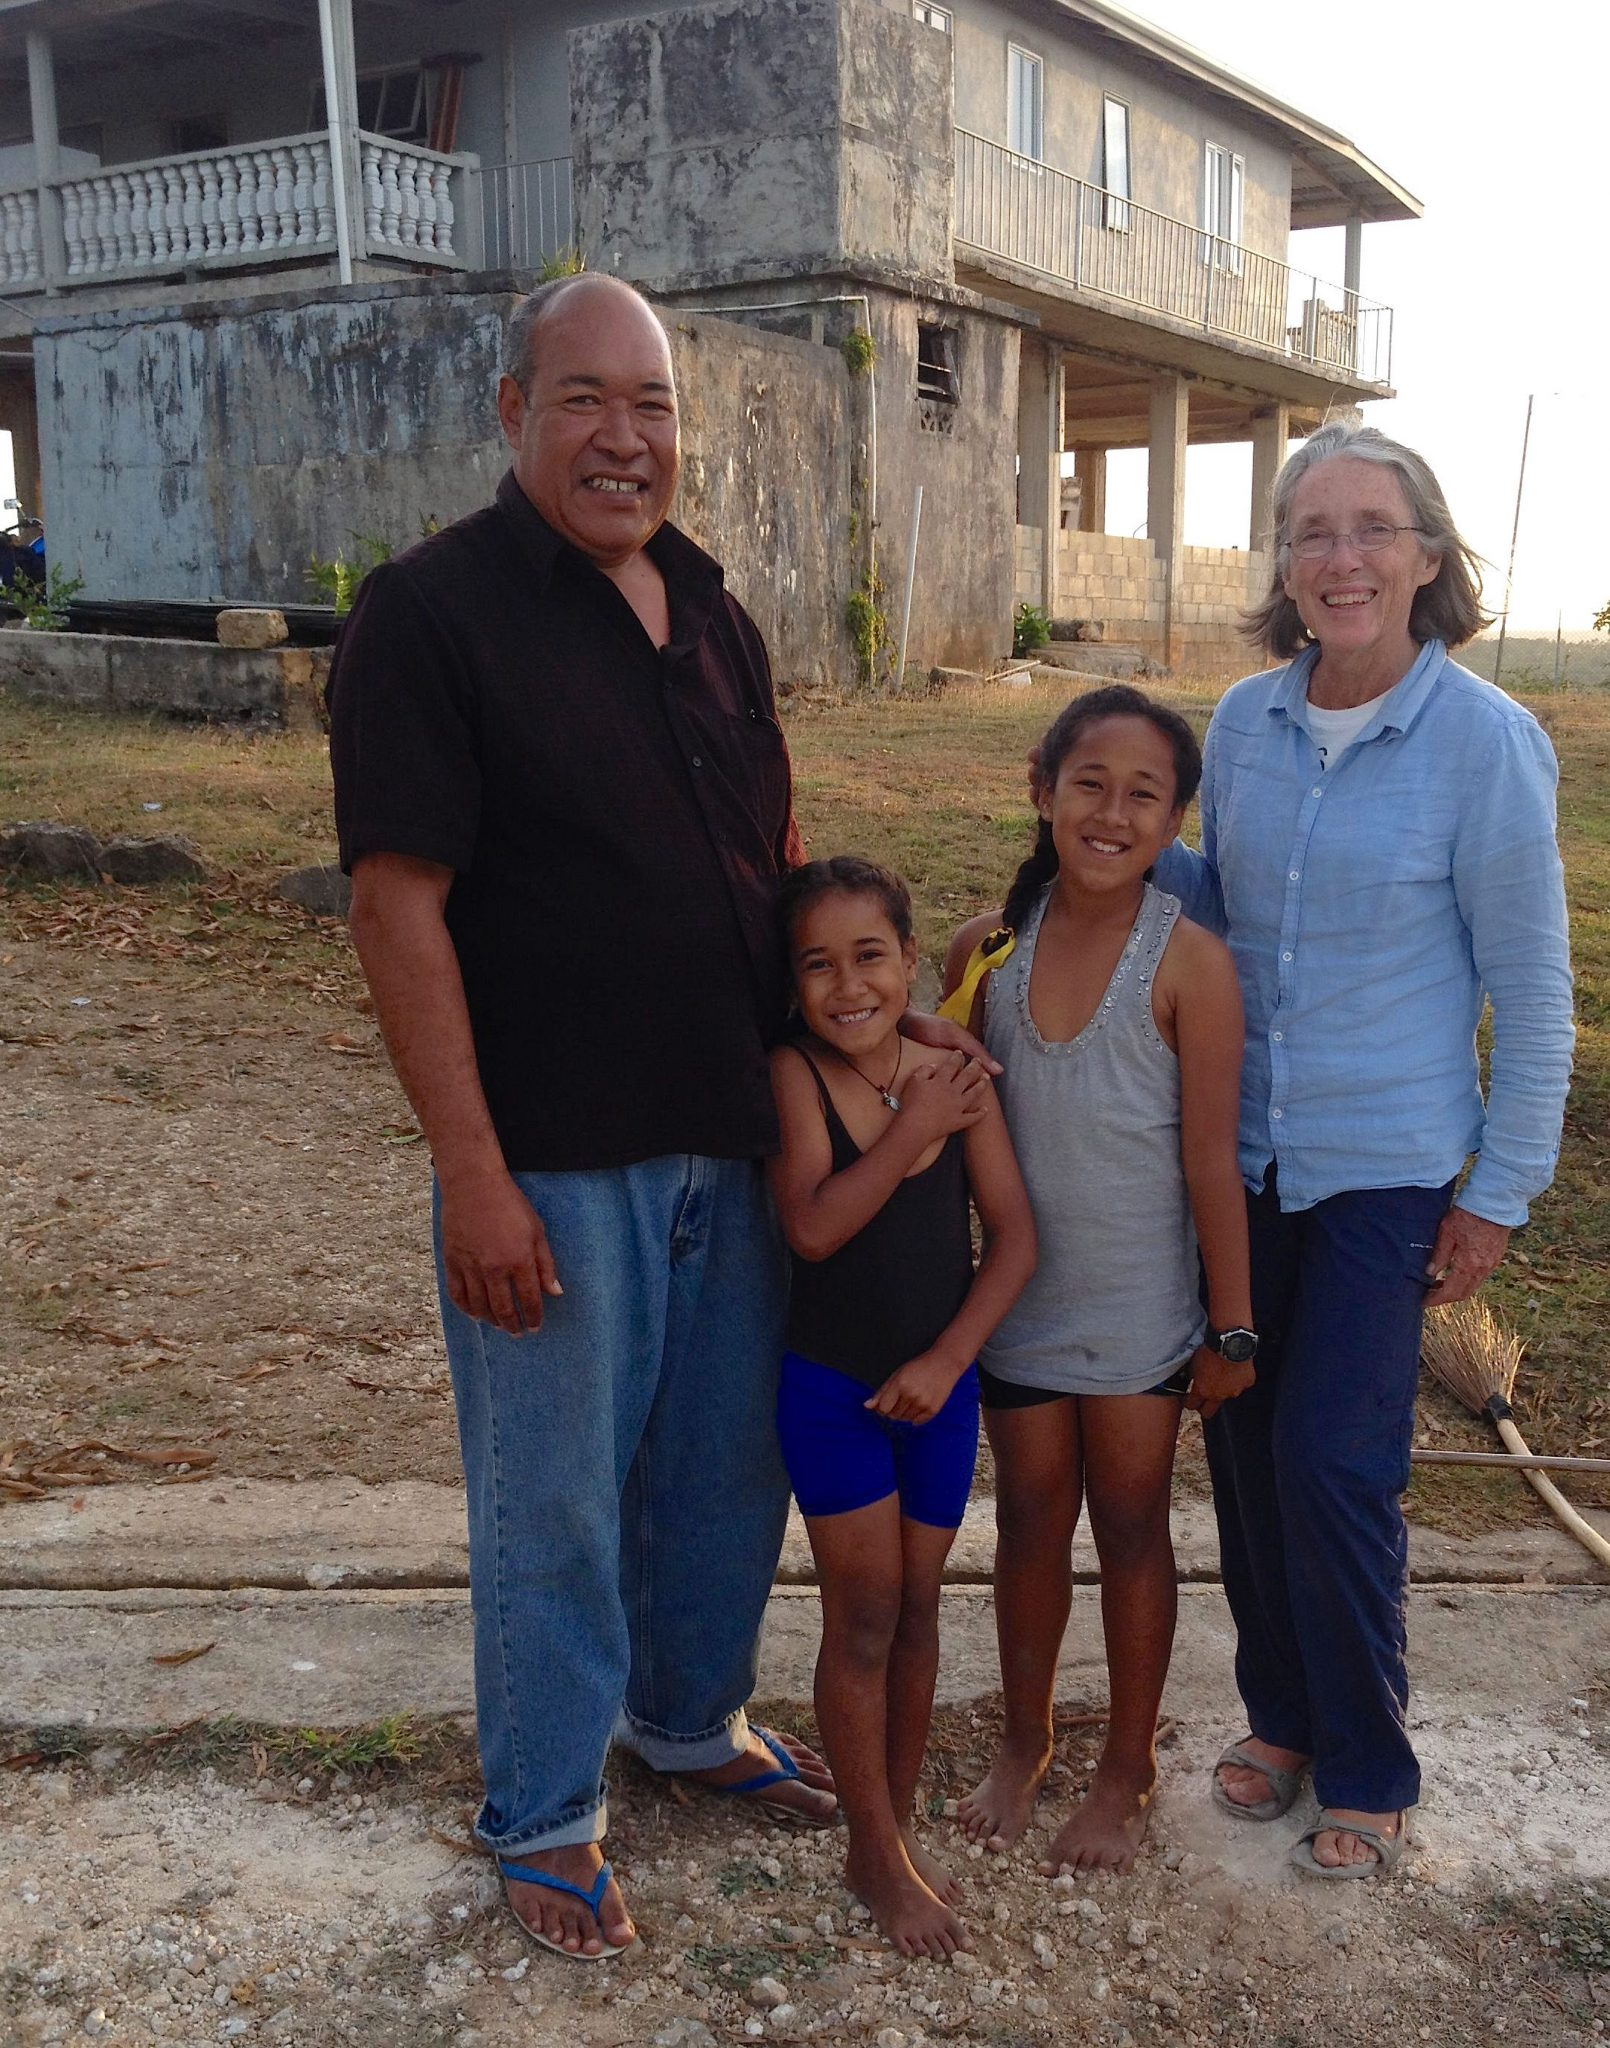 39. Anne with new Tongan friends, Peno, 'Ala, and Angelina. Land is usually handed down through generations in Tonga. Their home overlooks the gorgeous sea